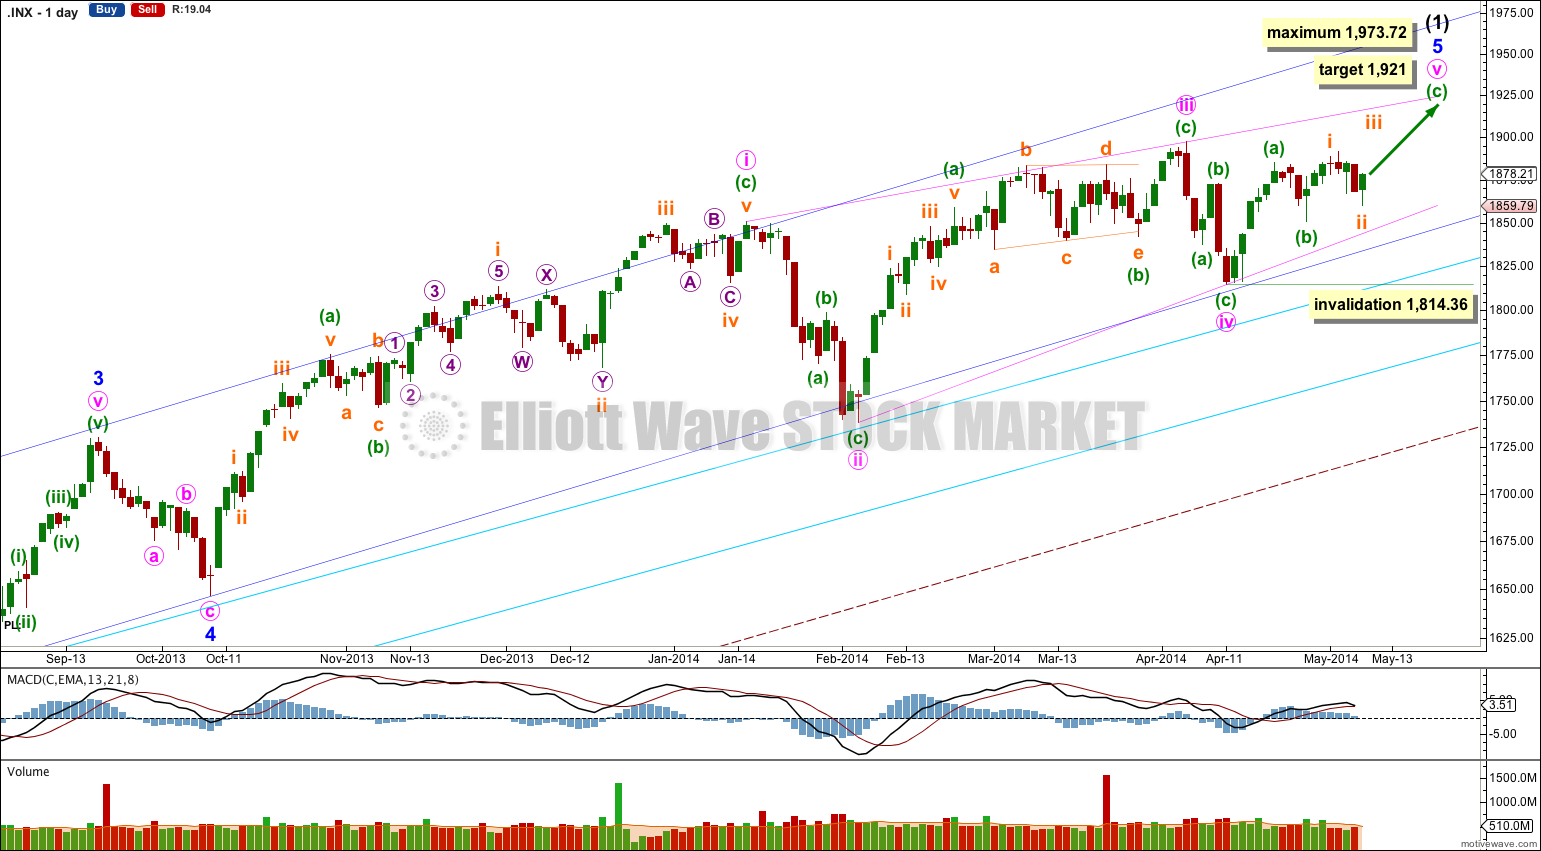 S&P 500 daily 2014